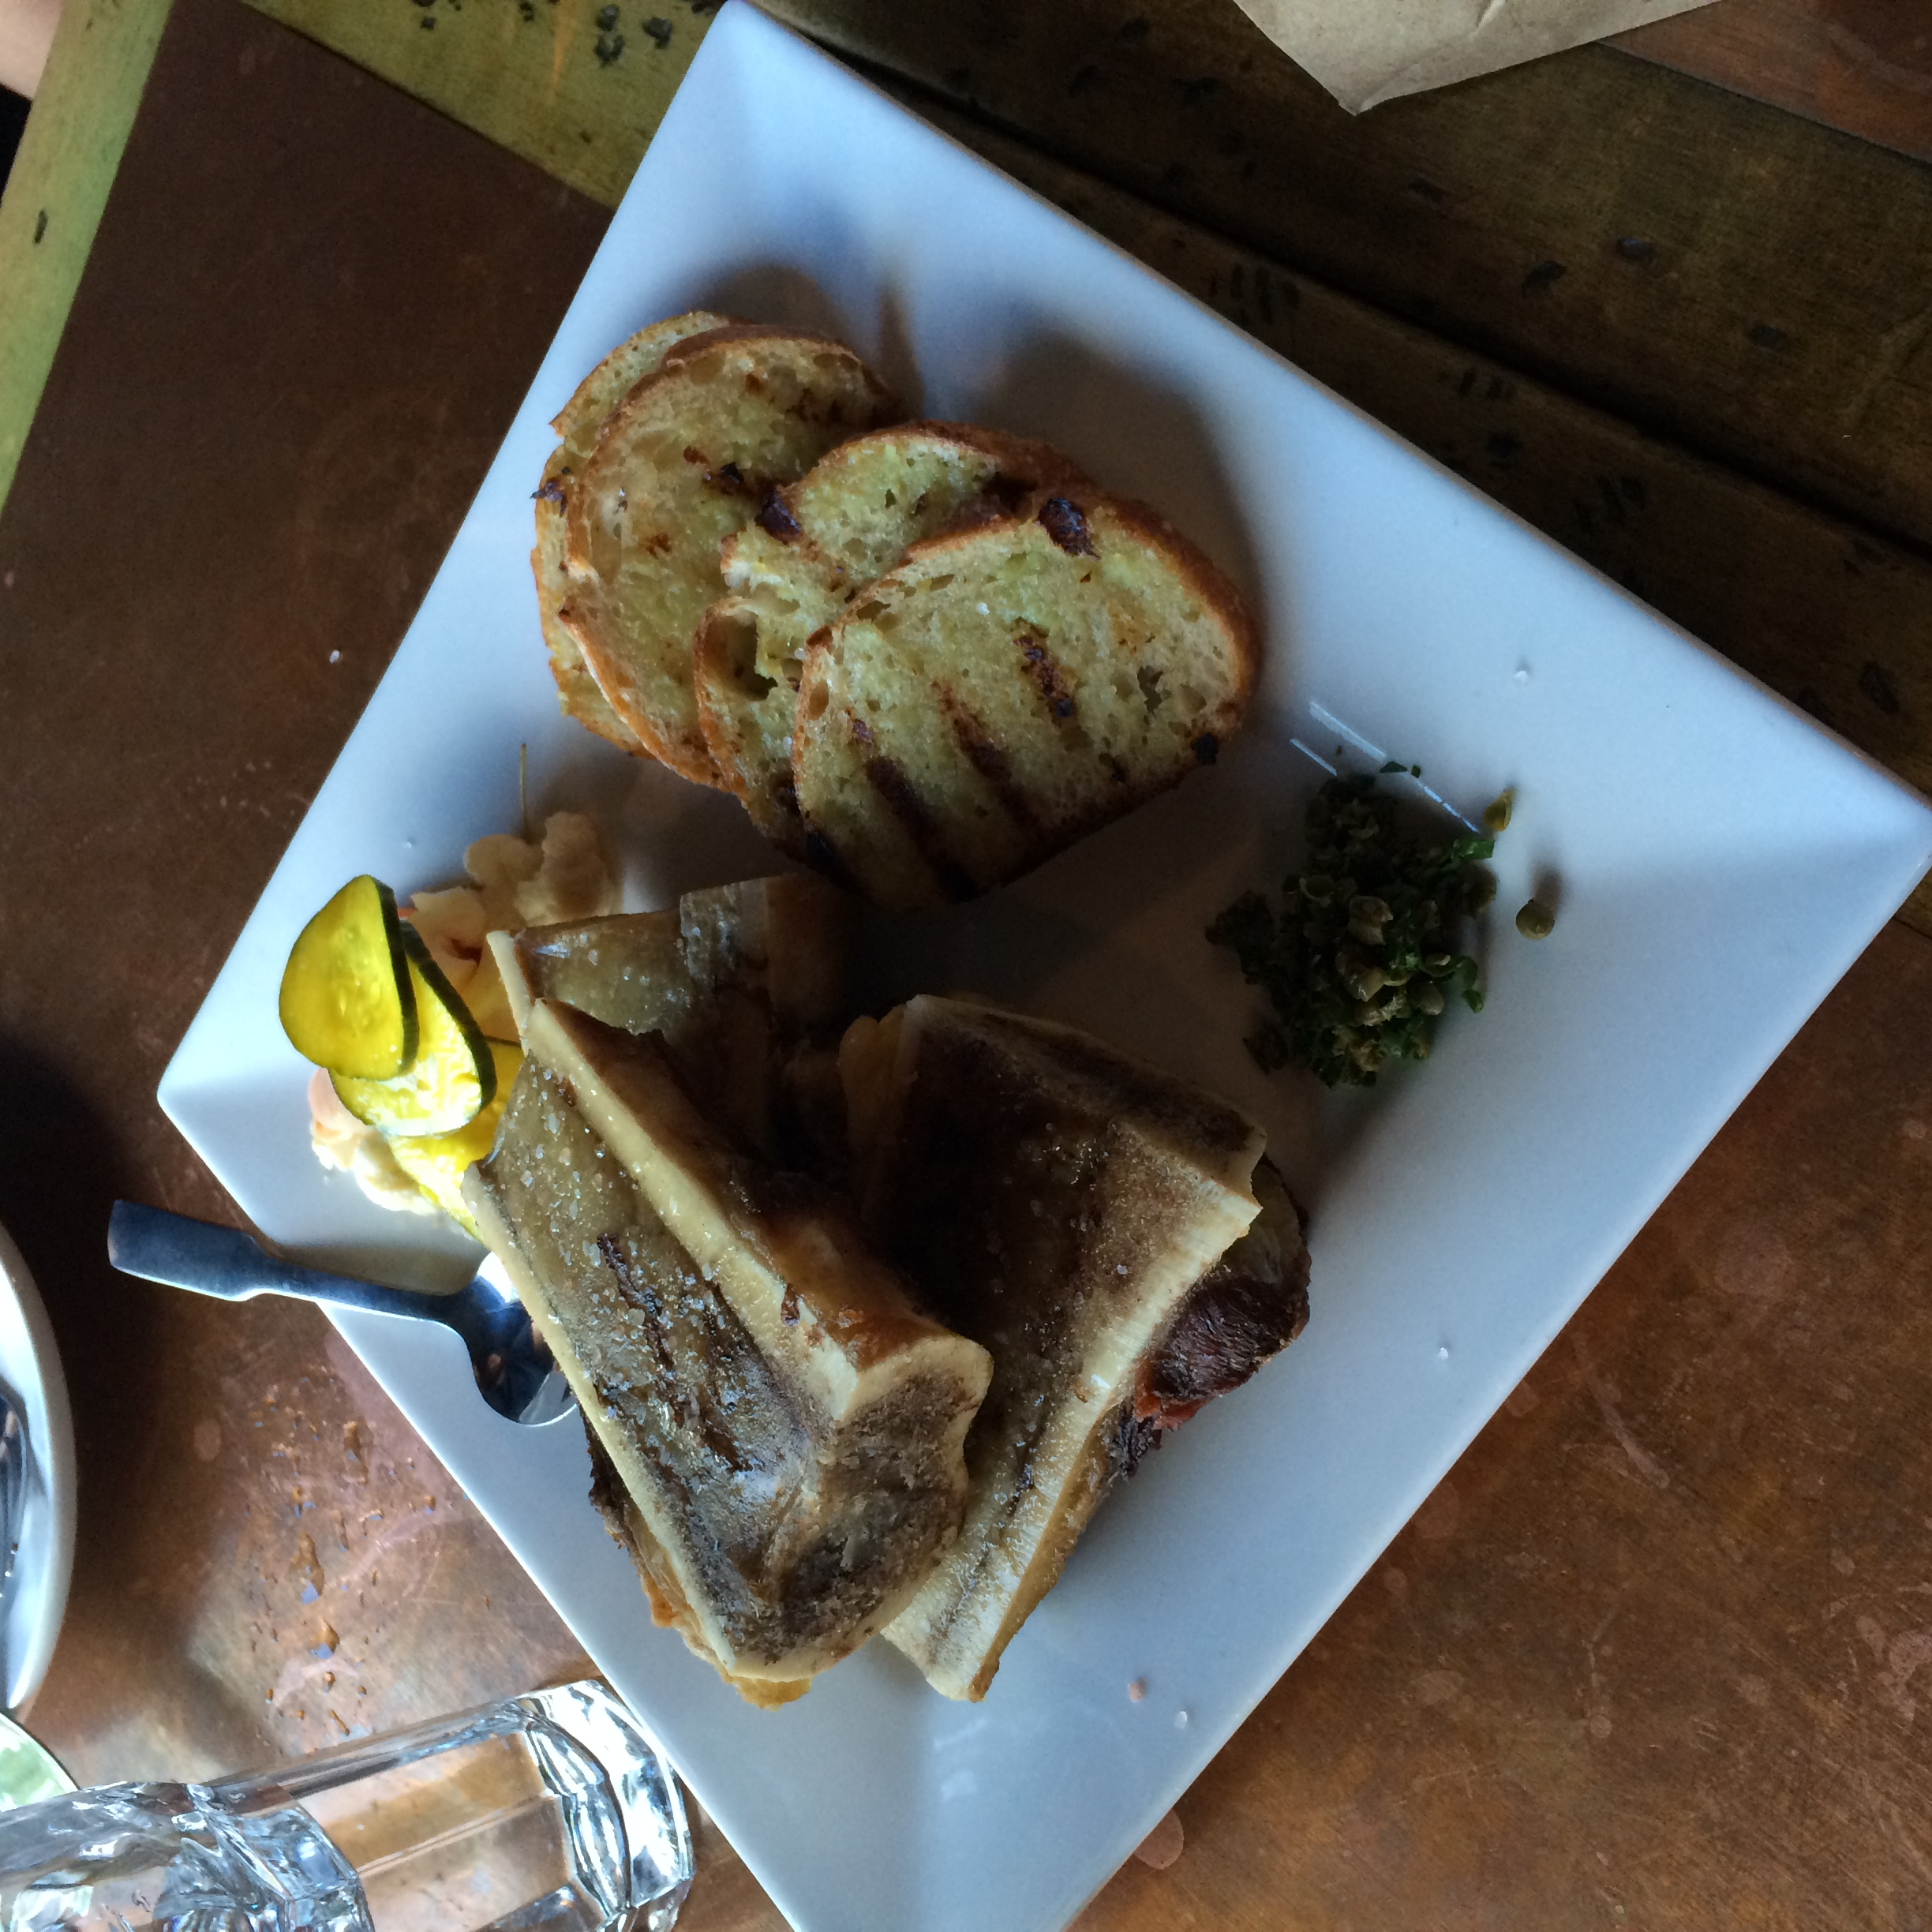 The bone marrow was expertly roasted and perfectly seasoned.